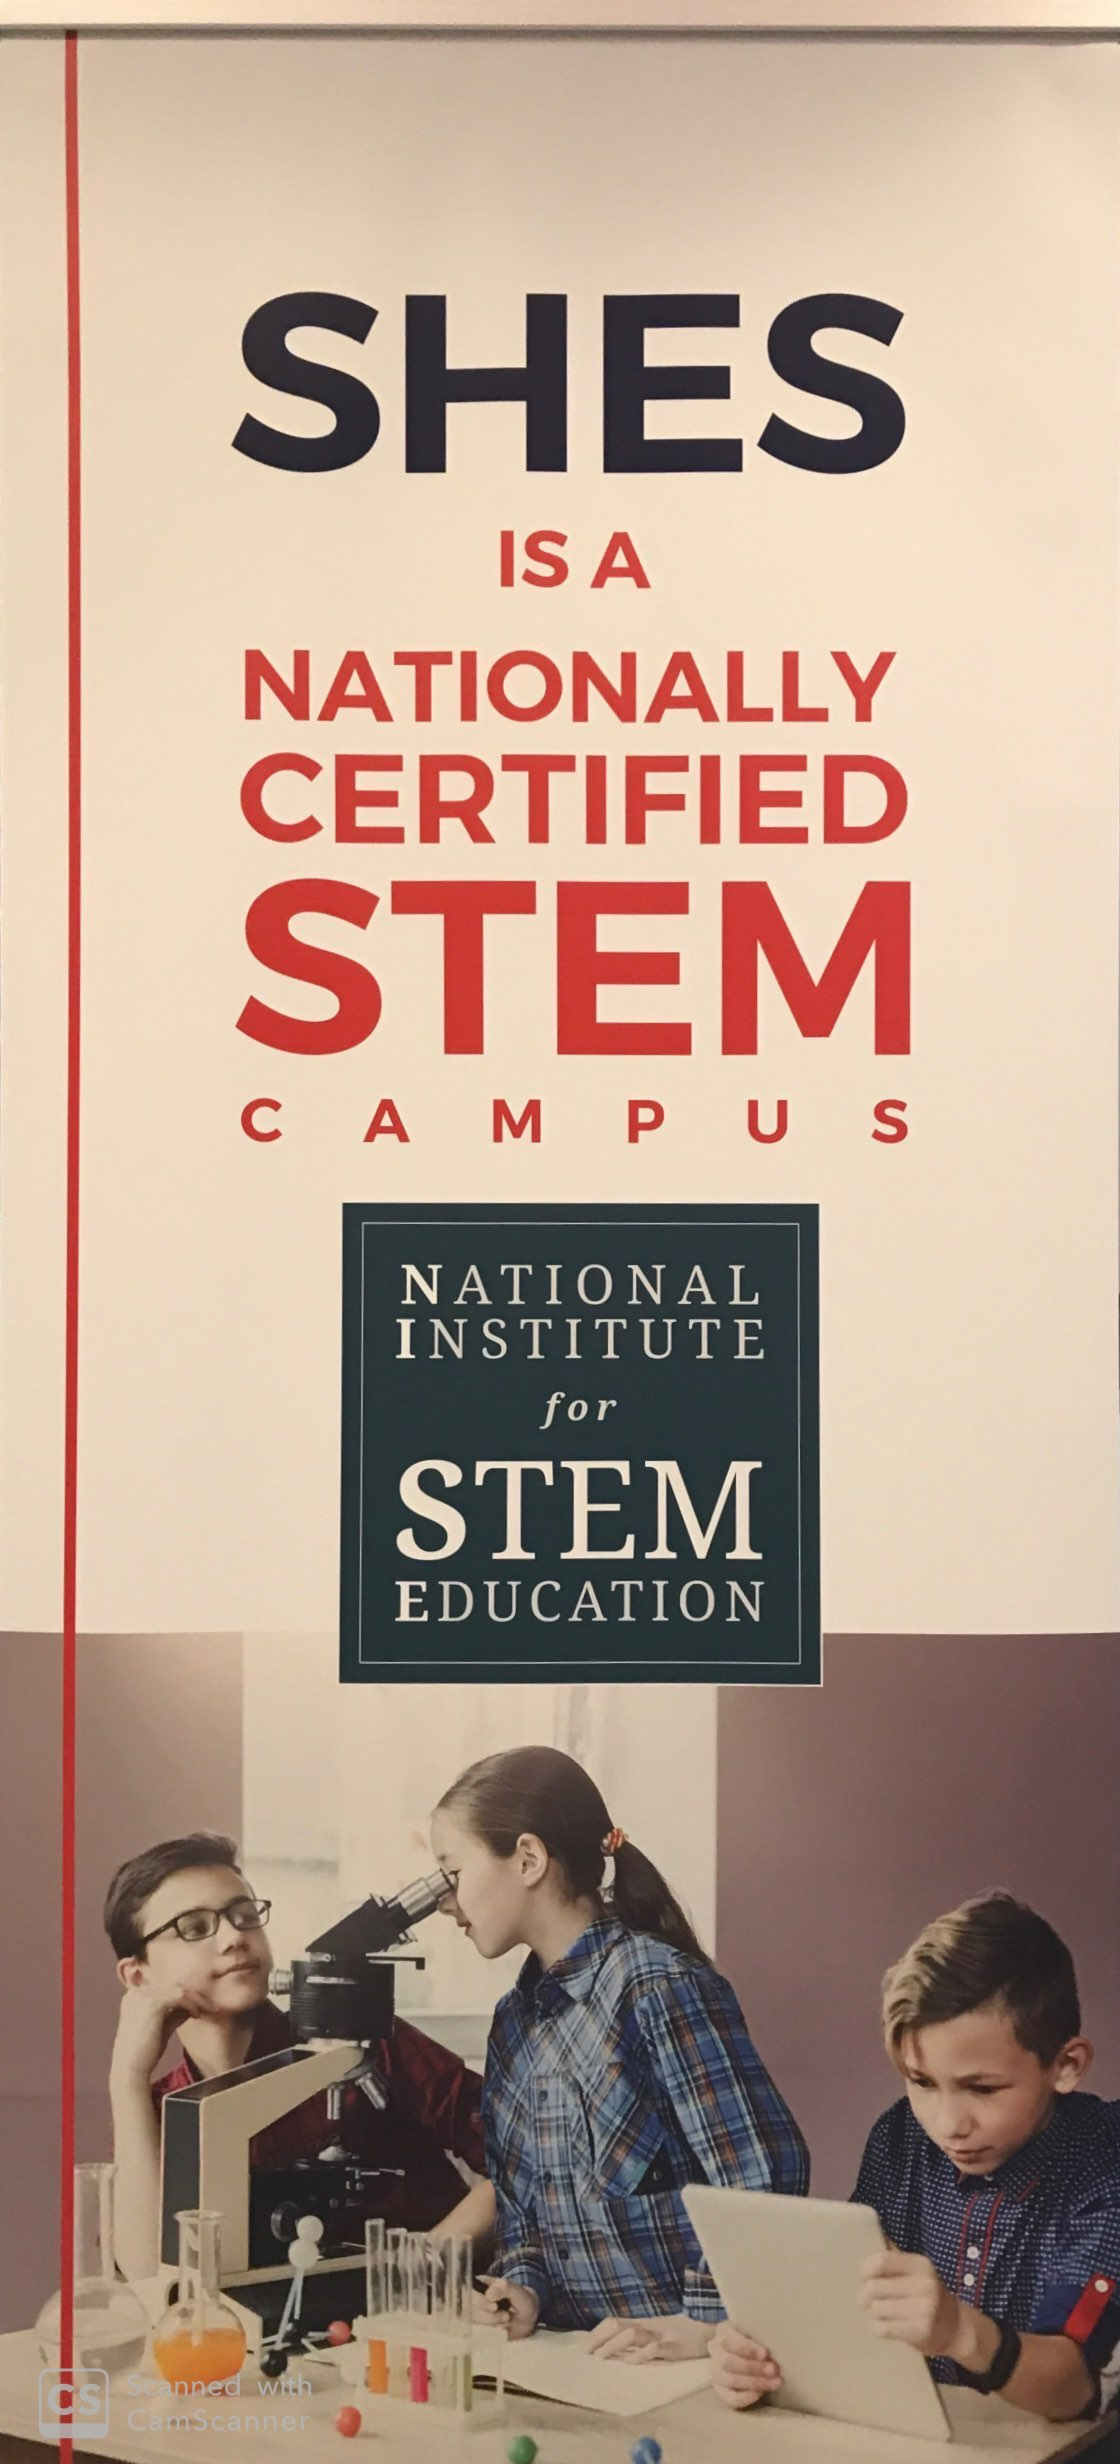 Nationally Certified STEM Campus